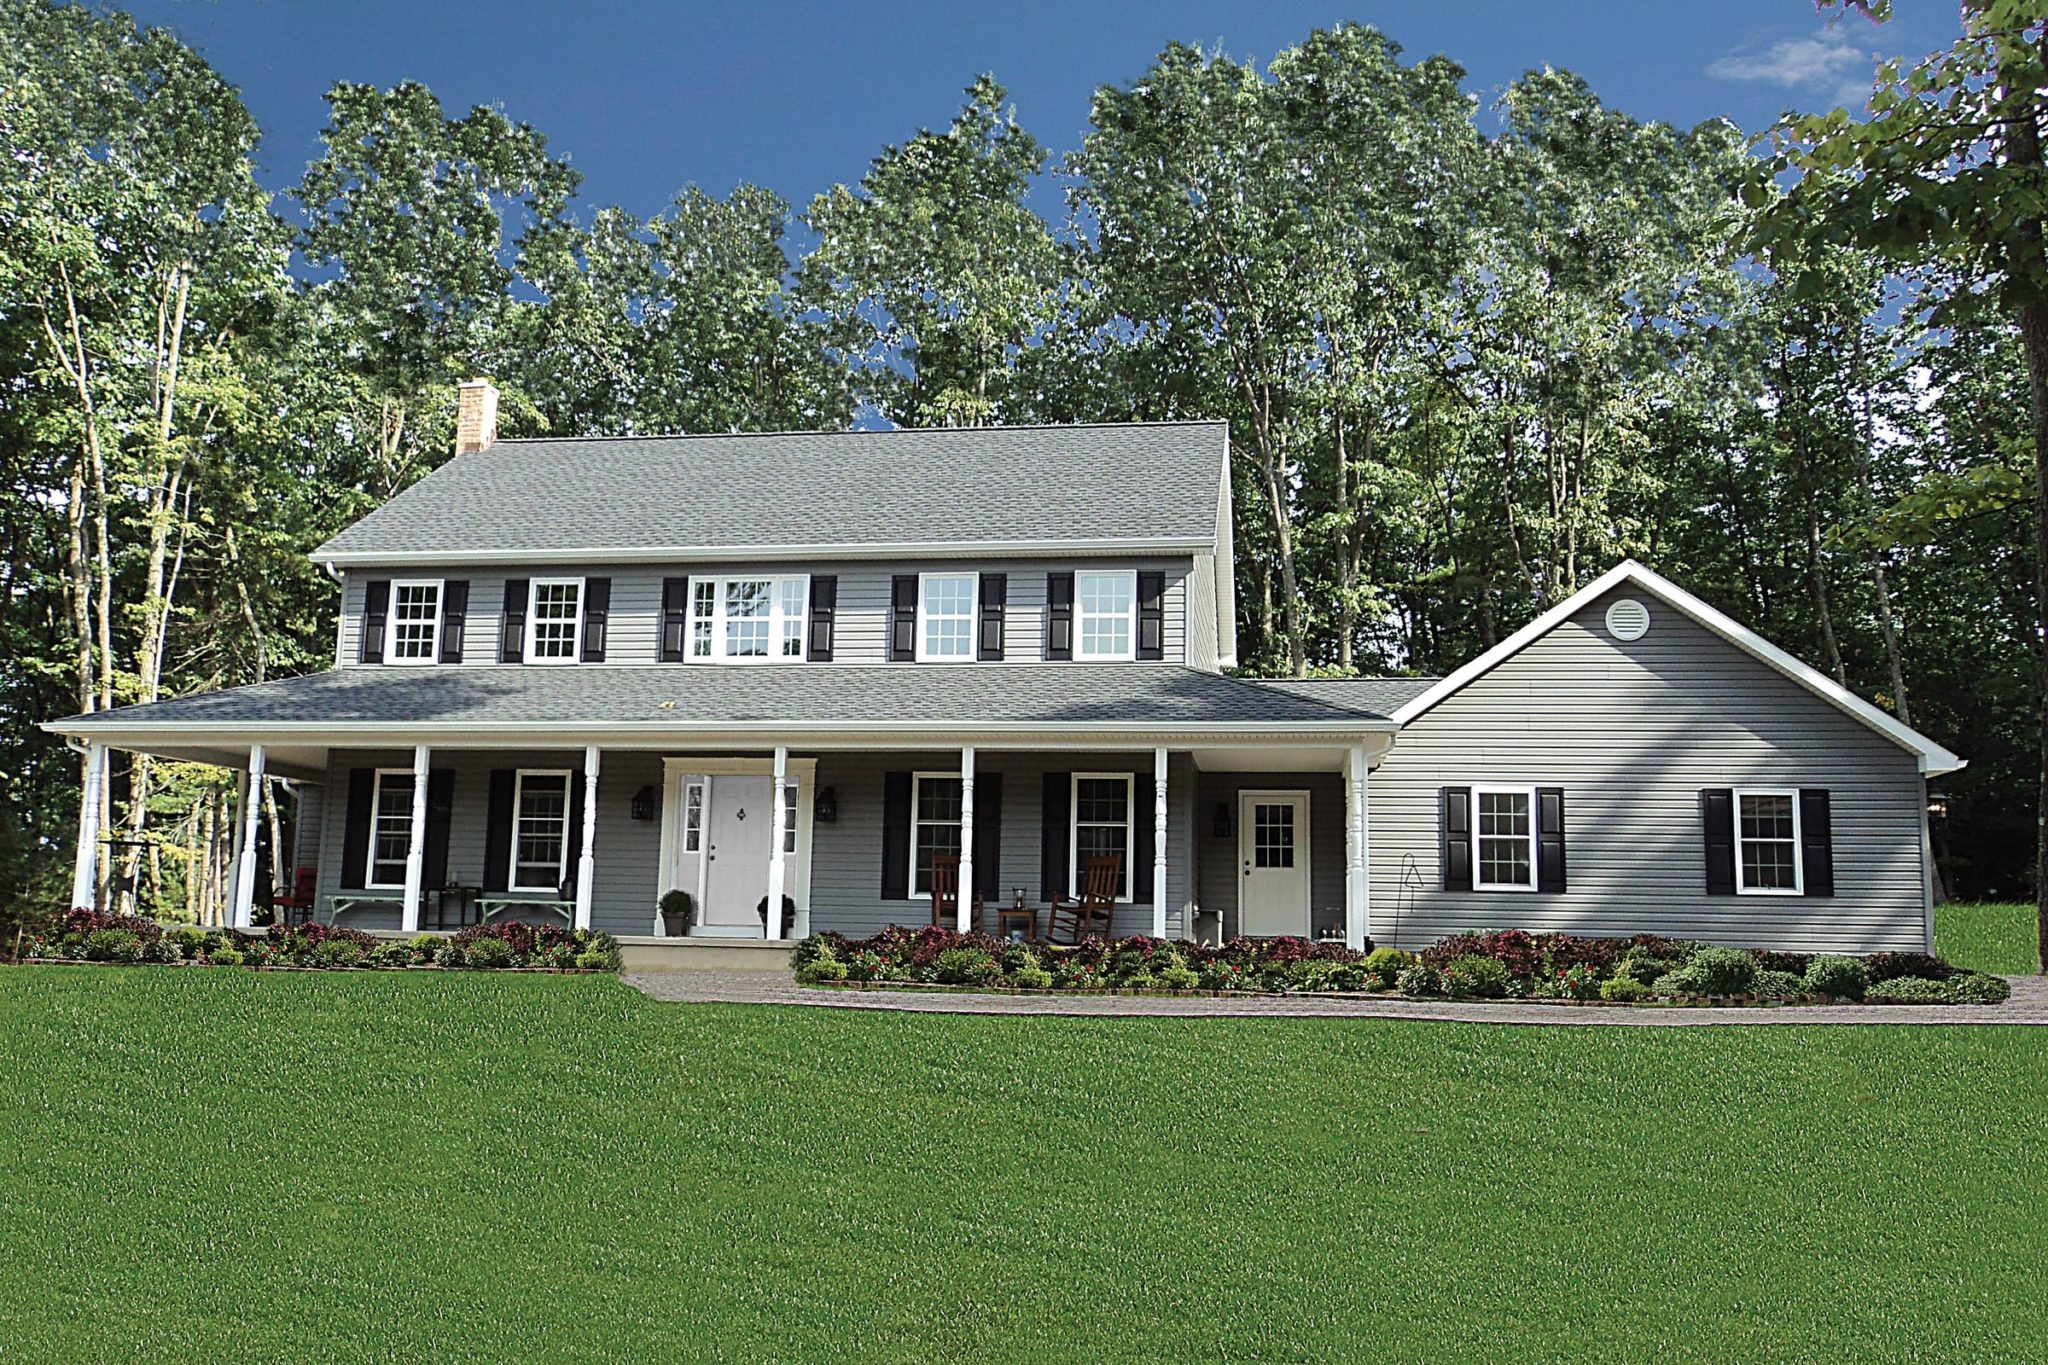 03 Colonial Optional Exterior Without Porch Railing And